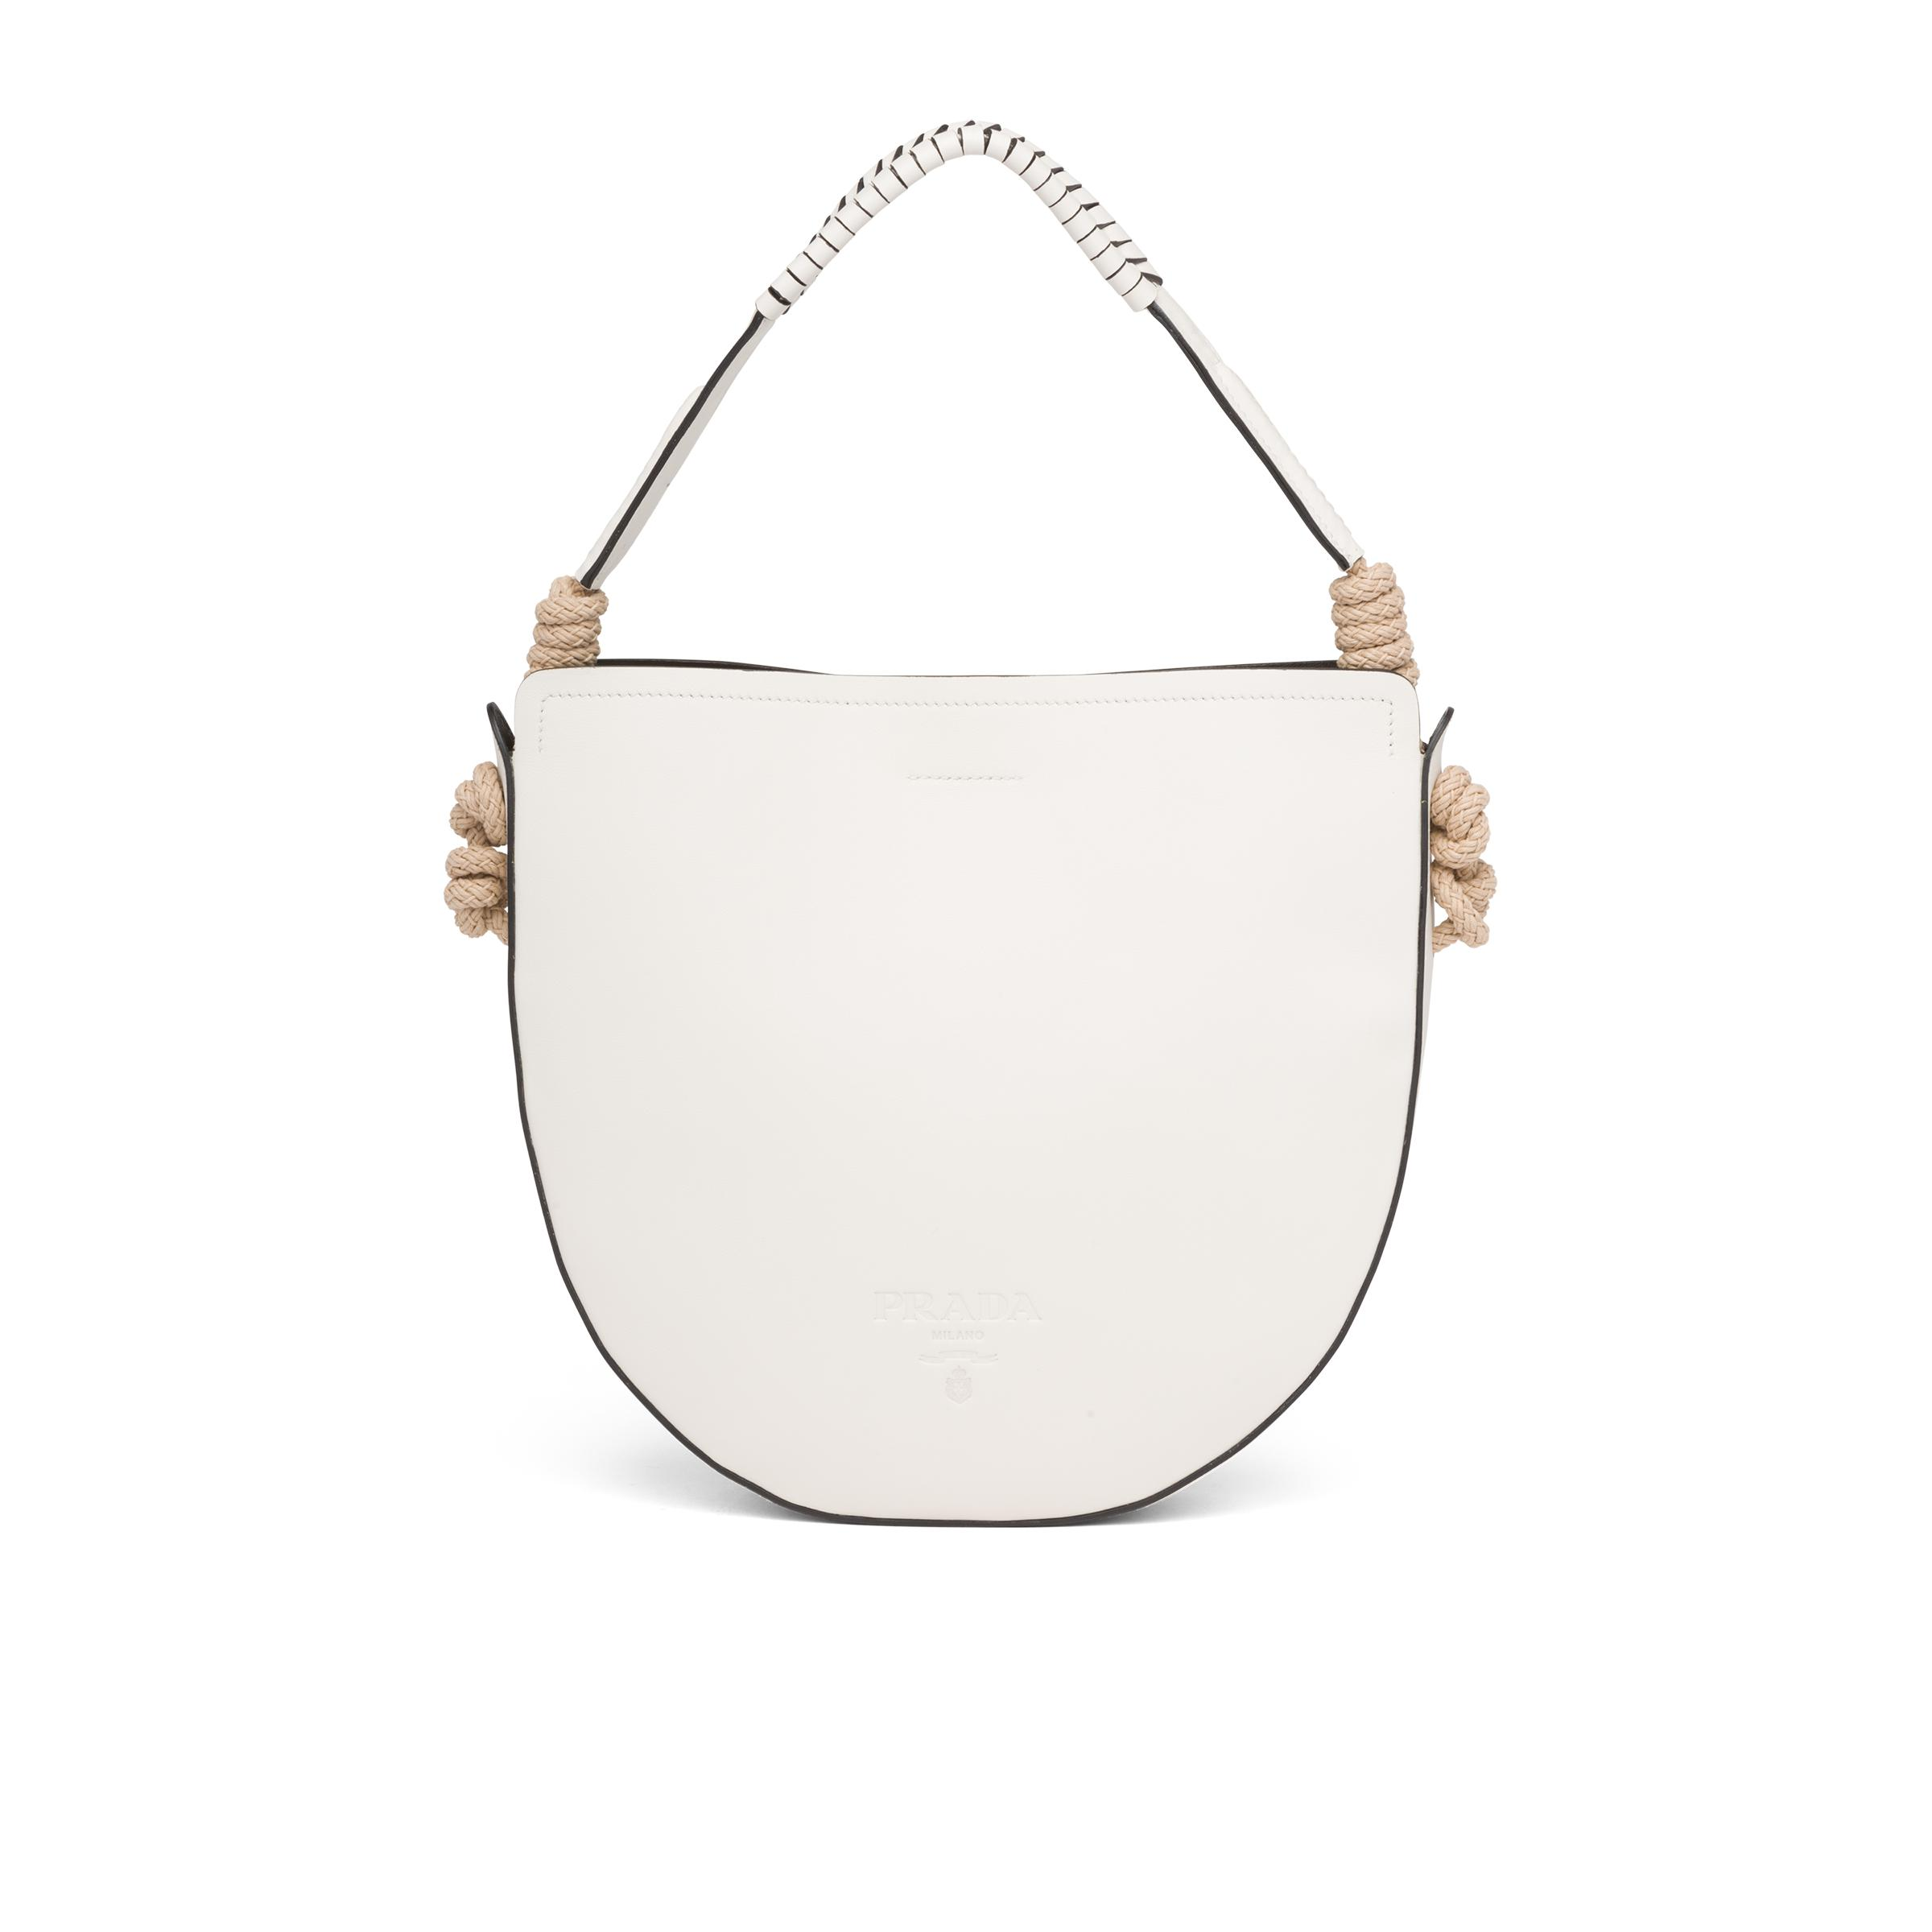 Leather Bag With Cord Details Women White/black 0